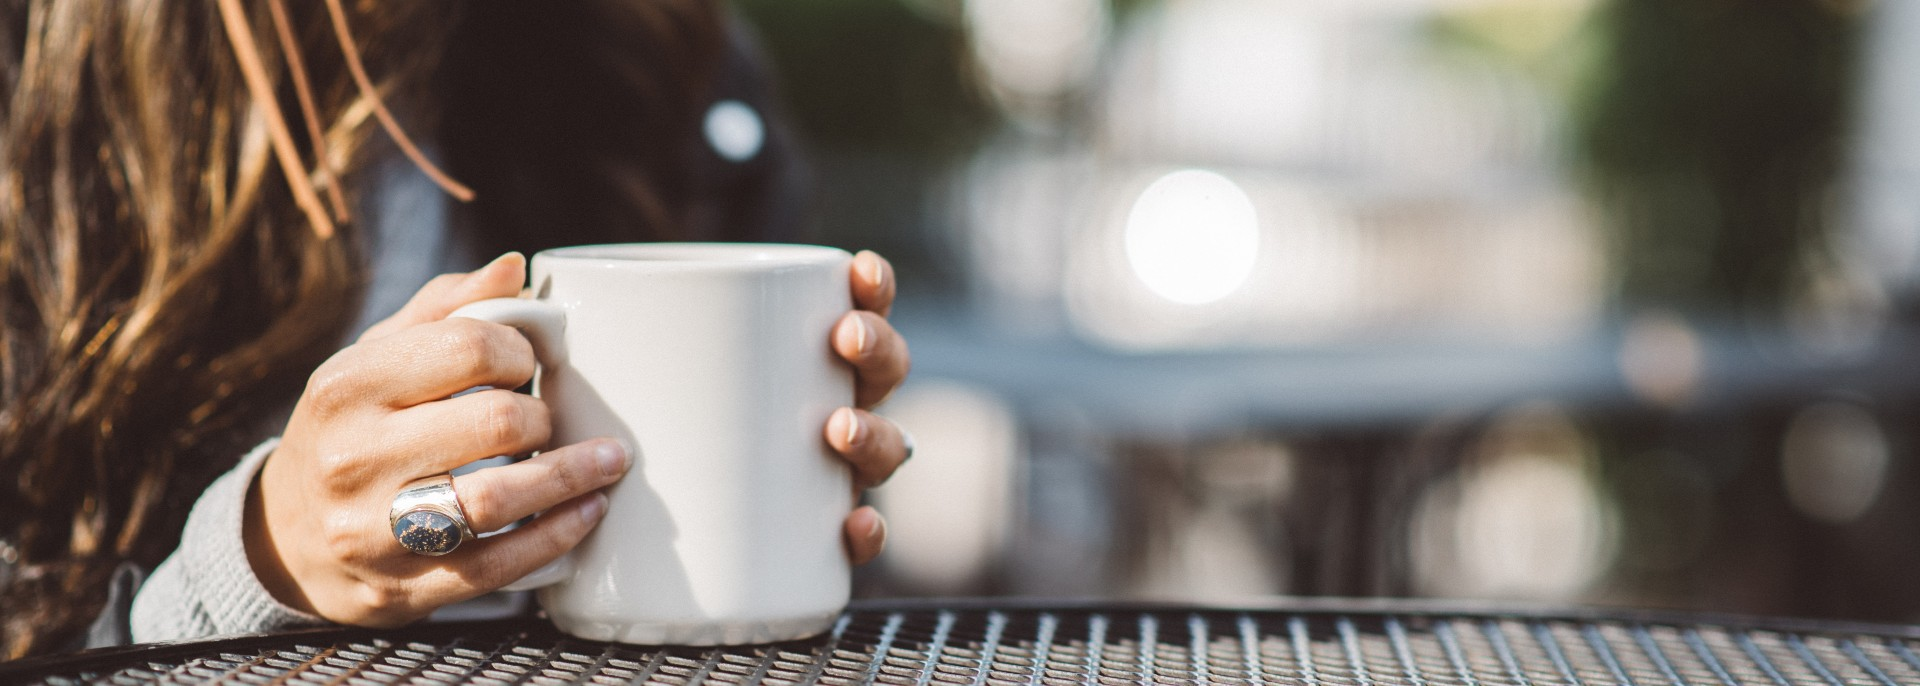 Girls hands holding a cup of coffee on grey table